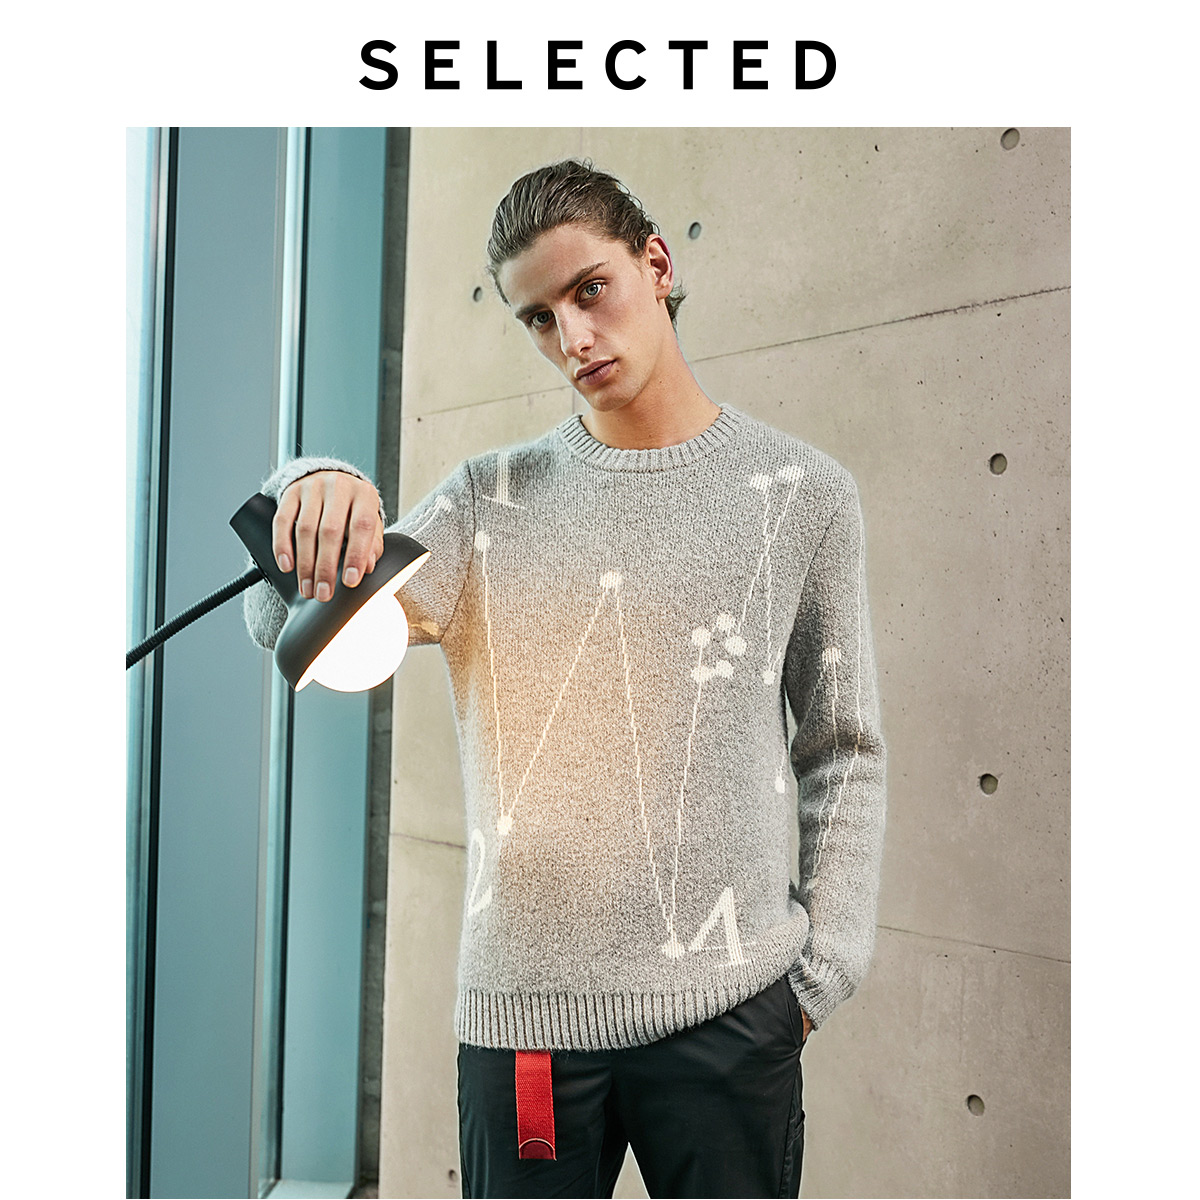 SELECTED Men's Autumn Figures & Lines Casual Knit LAB 419424529